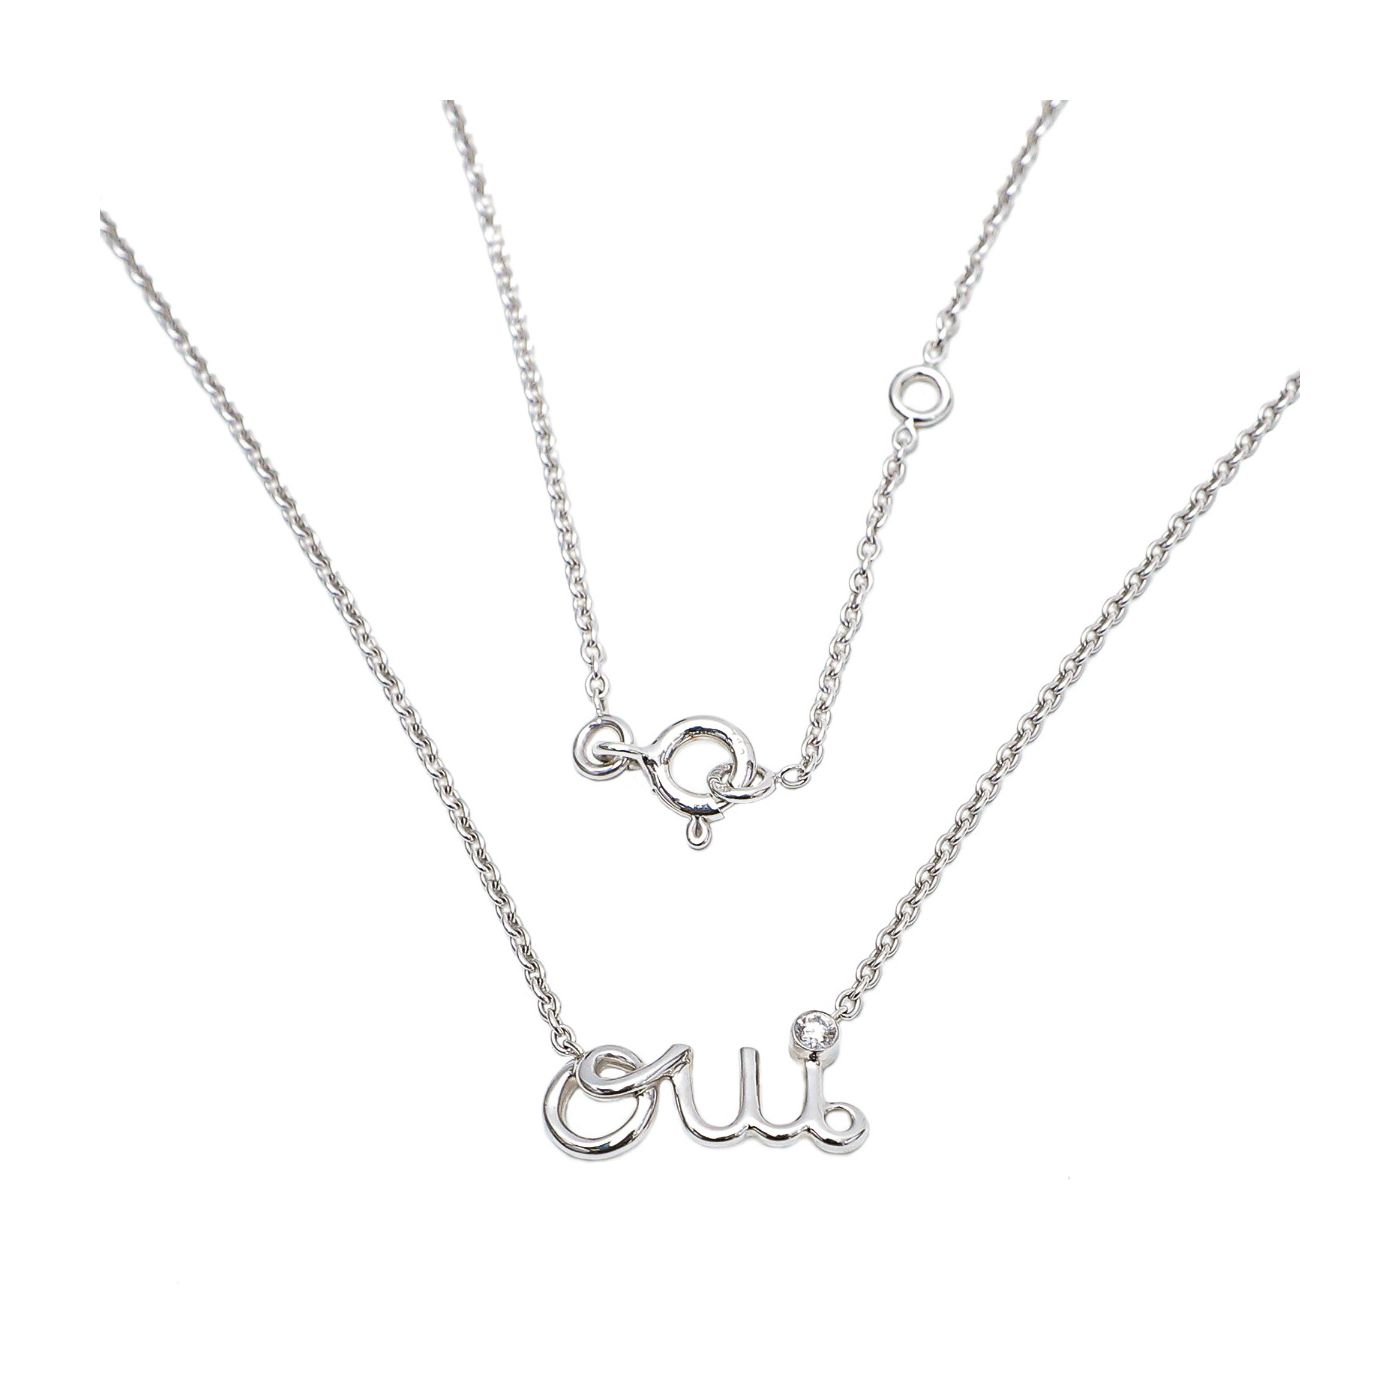 Christian Dior 18K White Gold with Diamond Oui Necklace